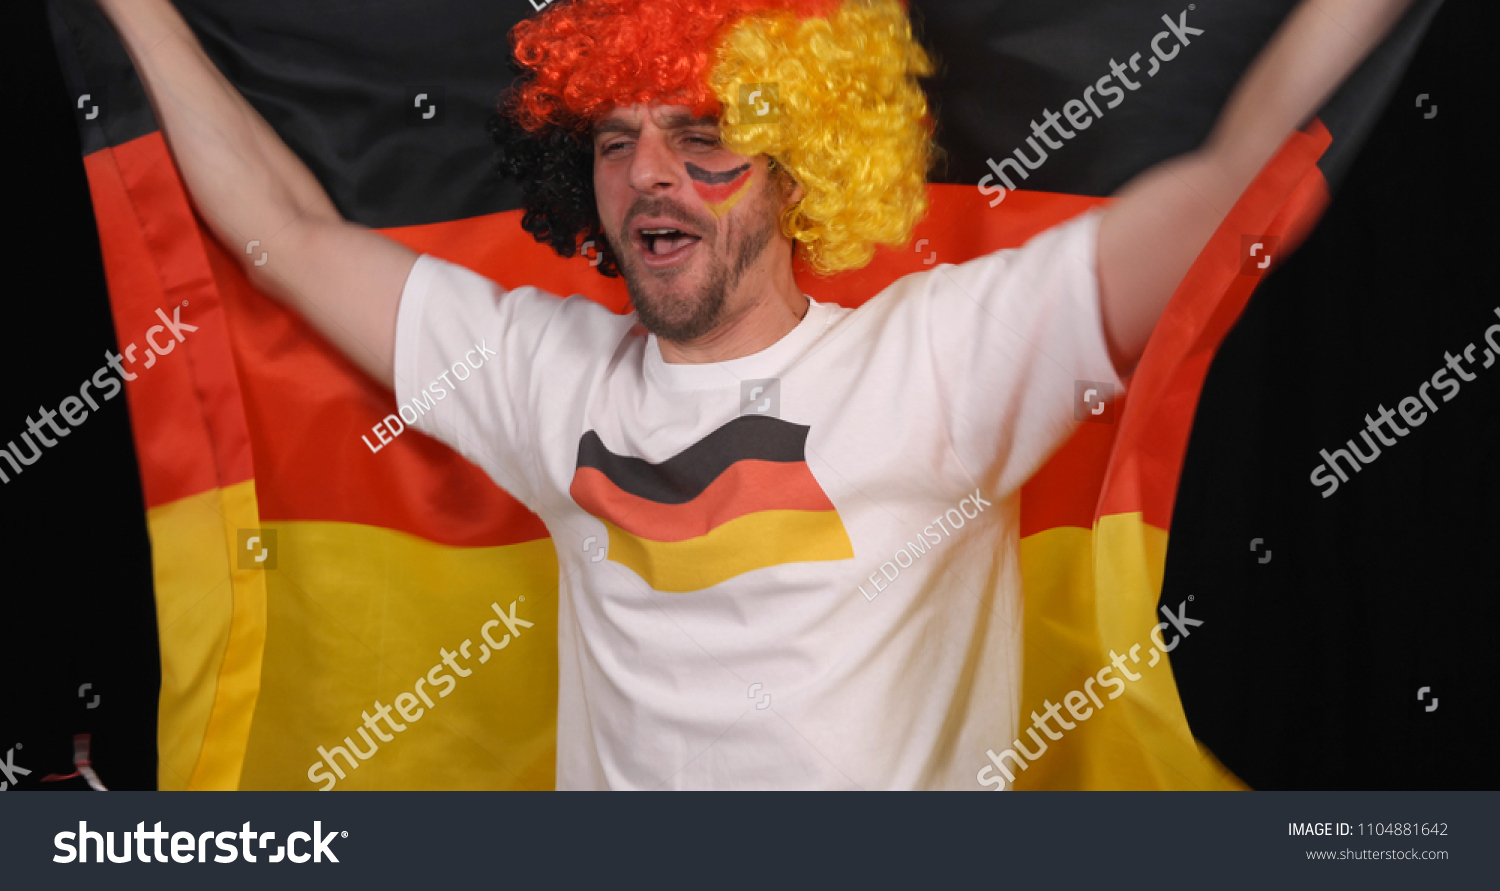 German Supporter Man Amateur Have Happiness Sports Recreation